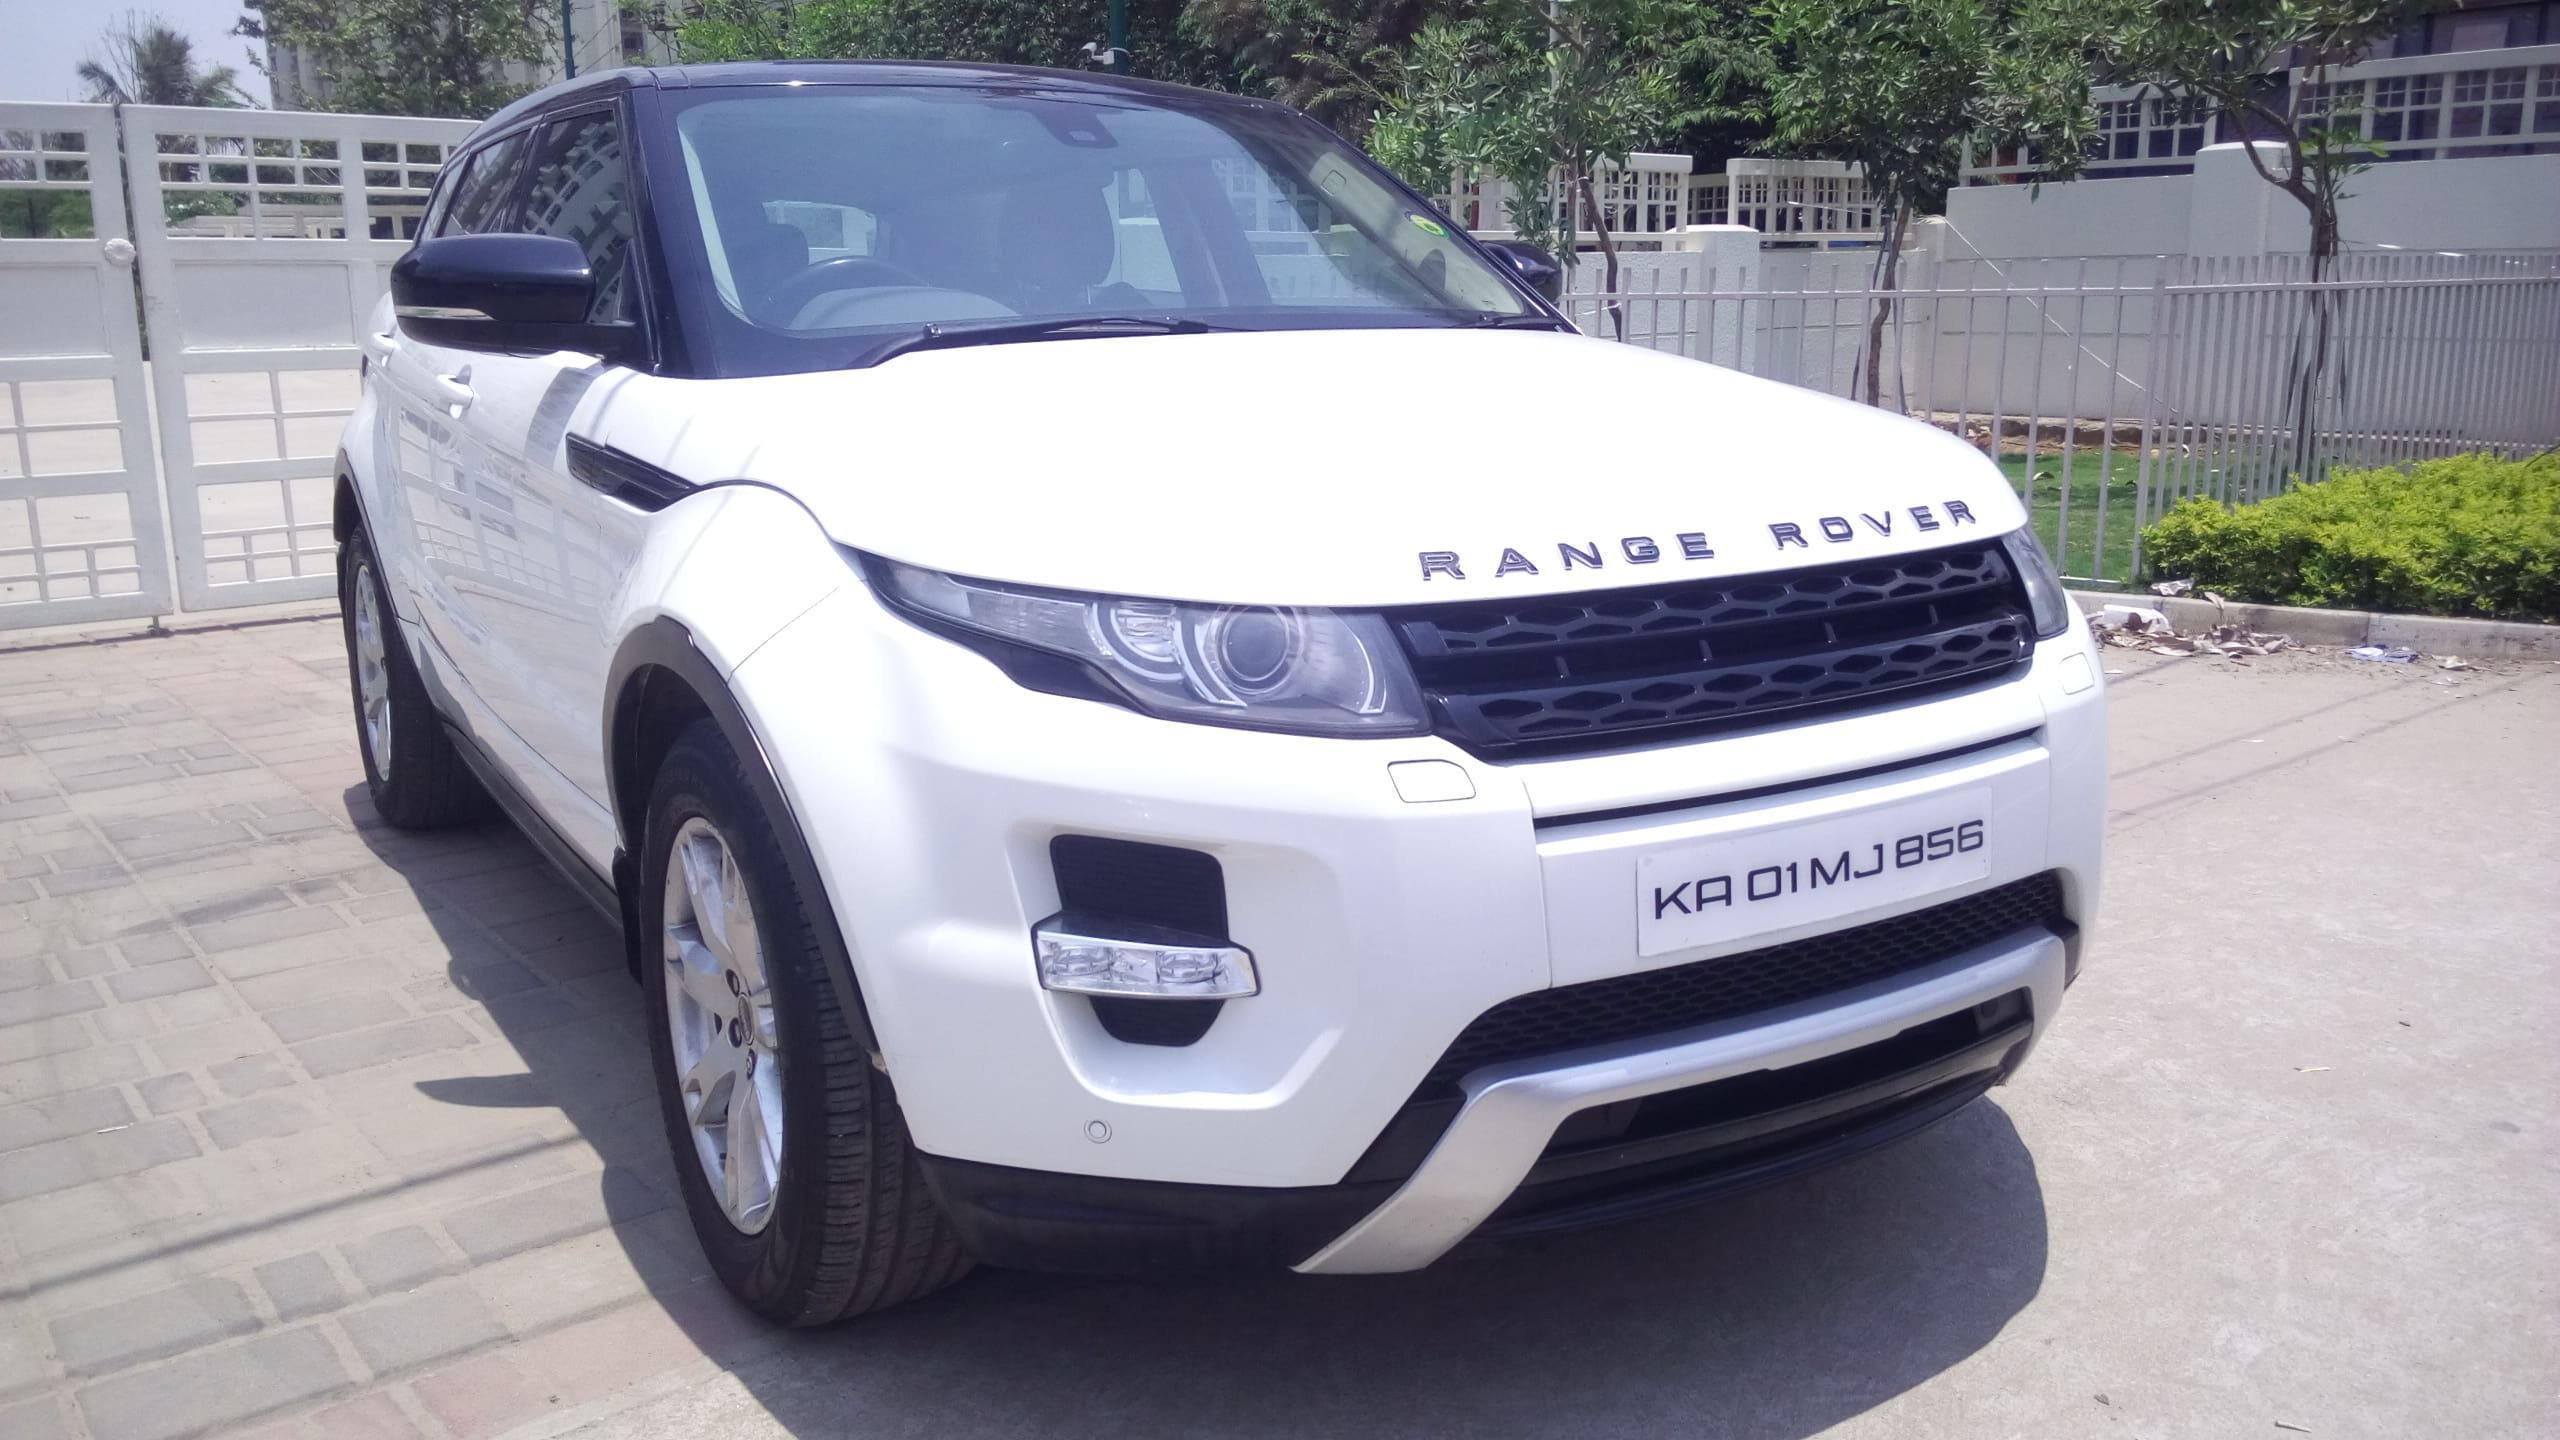 land rover infinity range landrover car evoque used dynamic